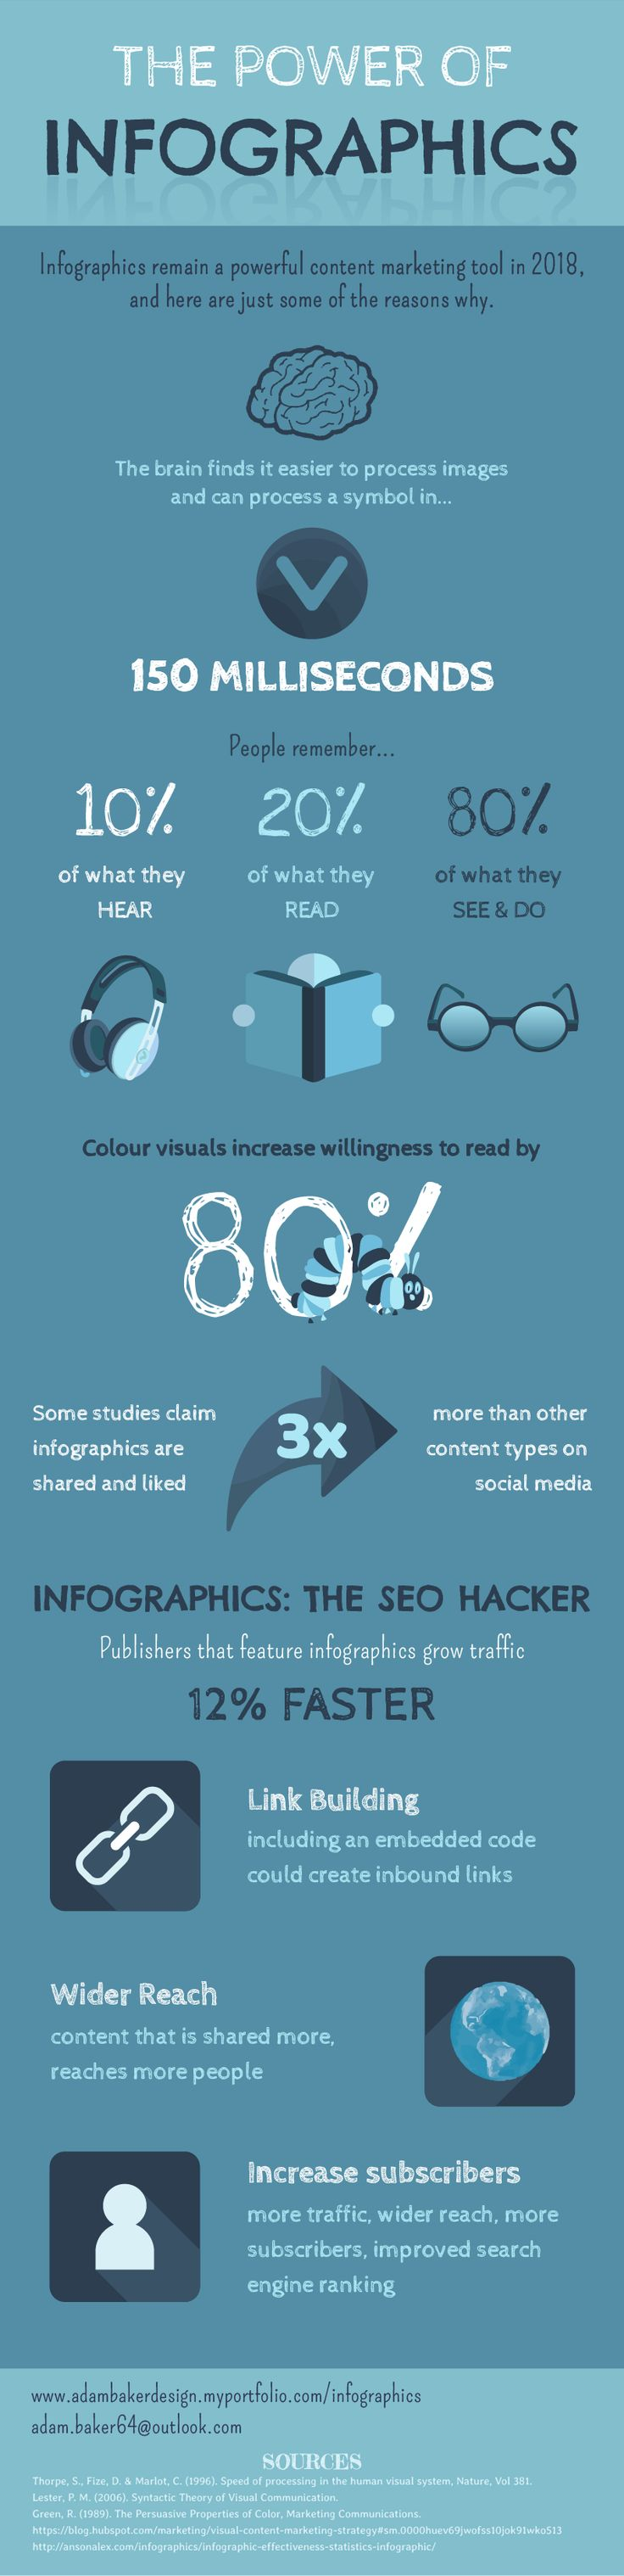 The Power of Infographics Infographics remain a powerful content marketing tool in 2018 - and here are just some of the reasons why #infographics #contentmarketing #power